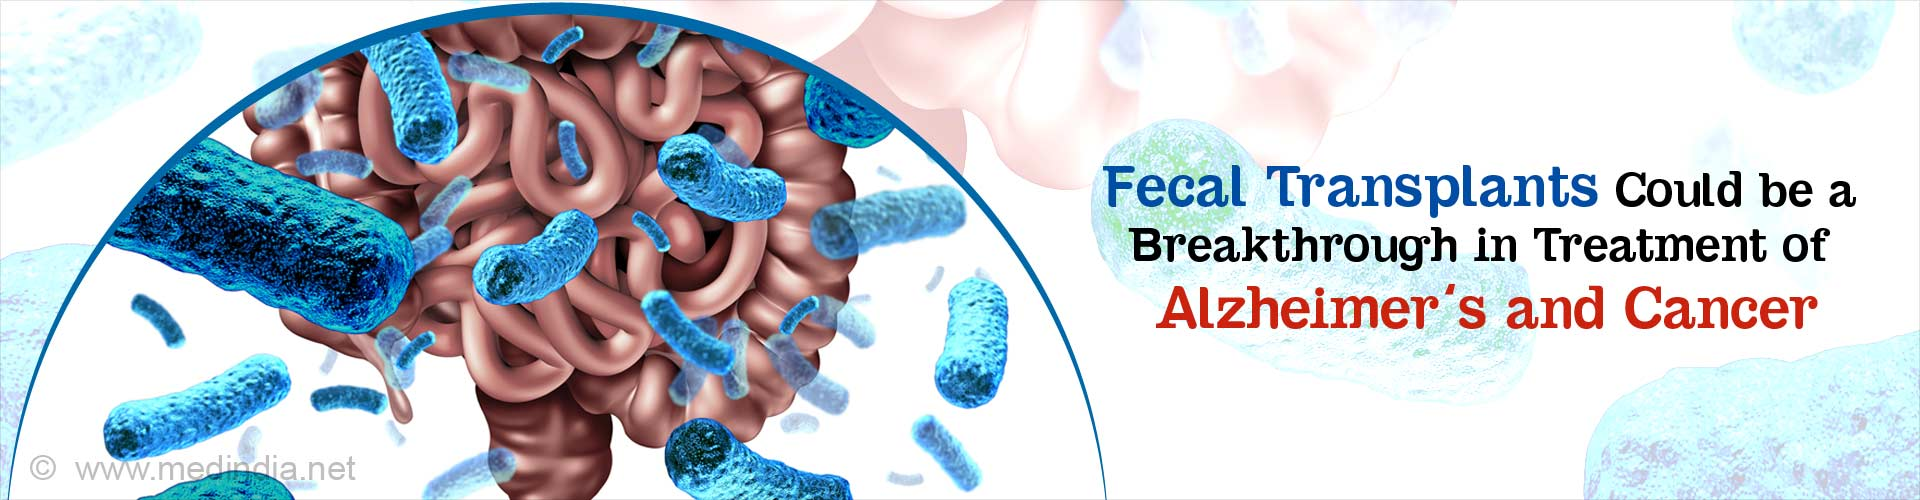 Fecal Transplants May Help Treat Alzheimer's and Cancer